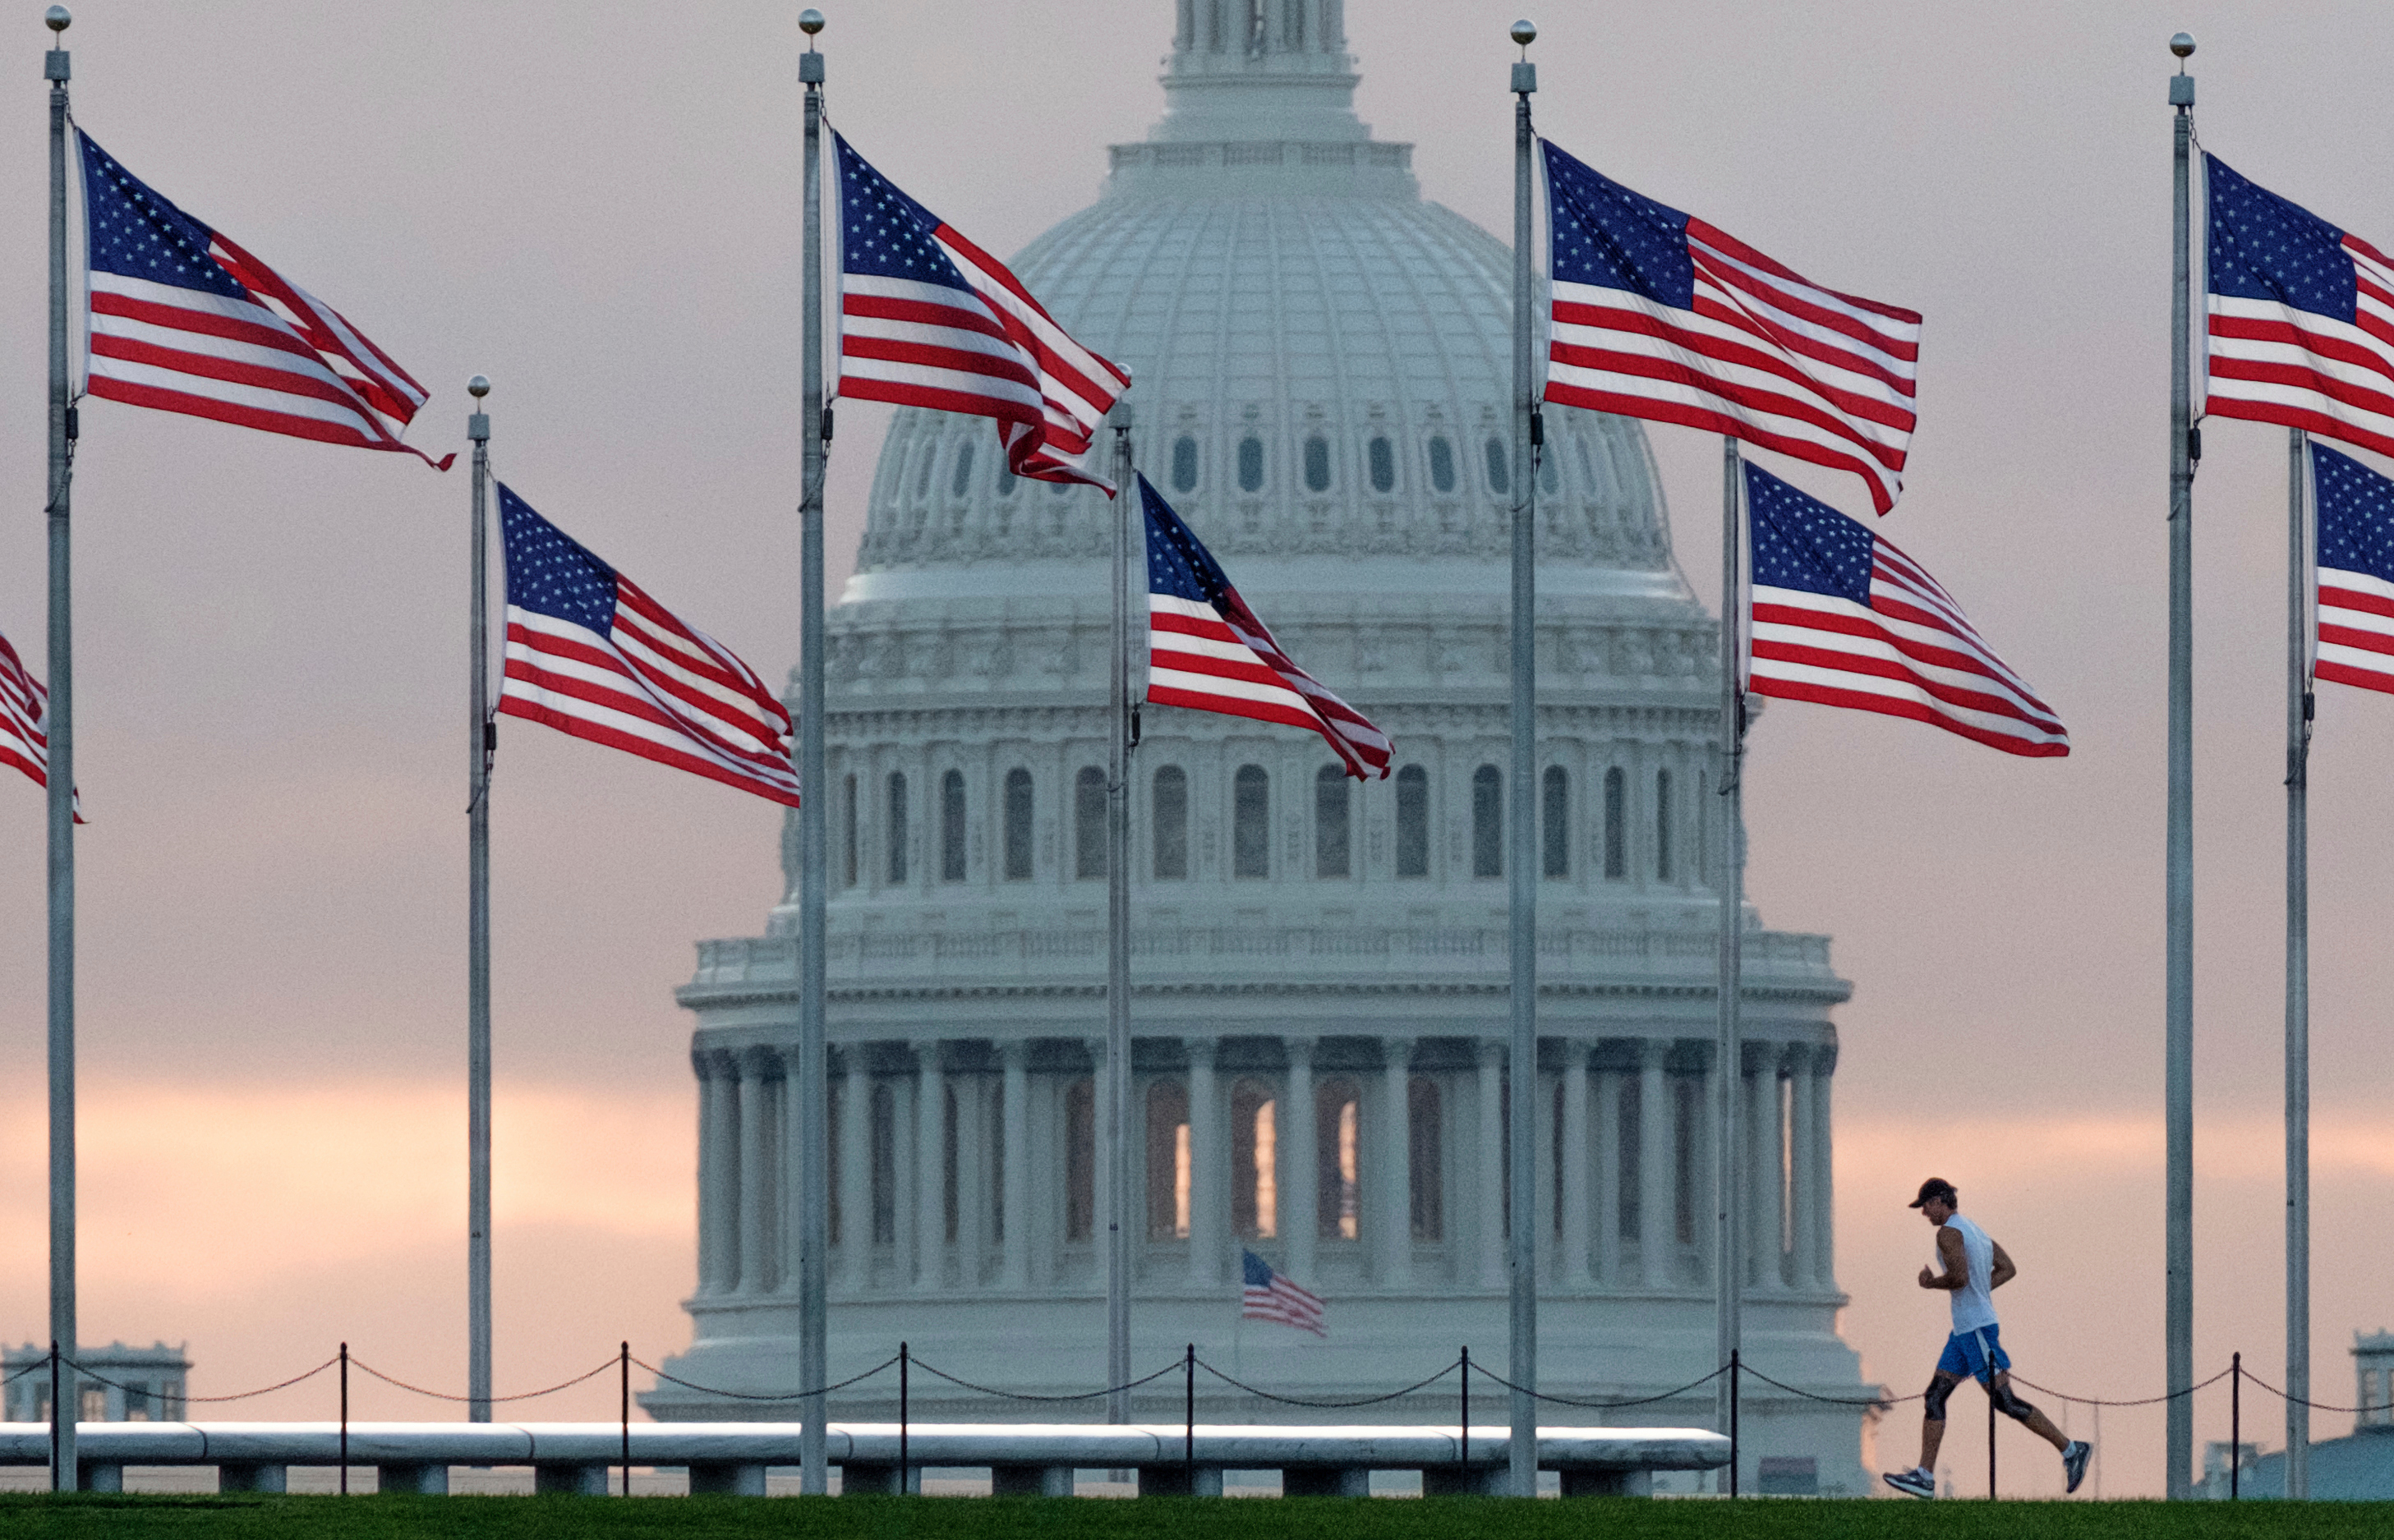 An early morning runner crosses in front of the U.S. Capitol as he runs around the Washington Monument in D.C. Control of Congress and power in Washington is at stake this Fall.